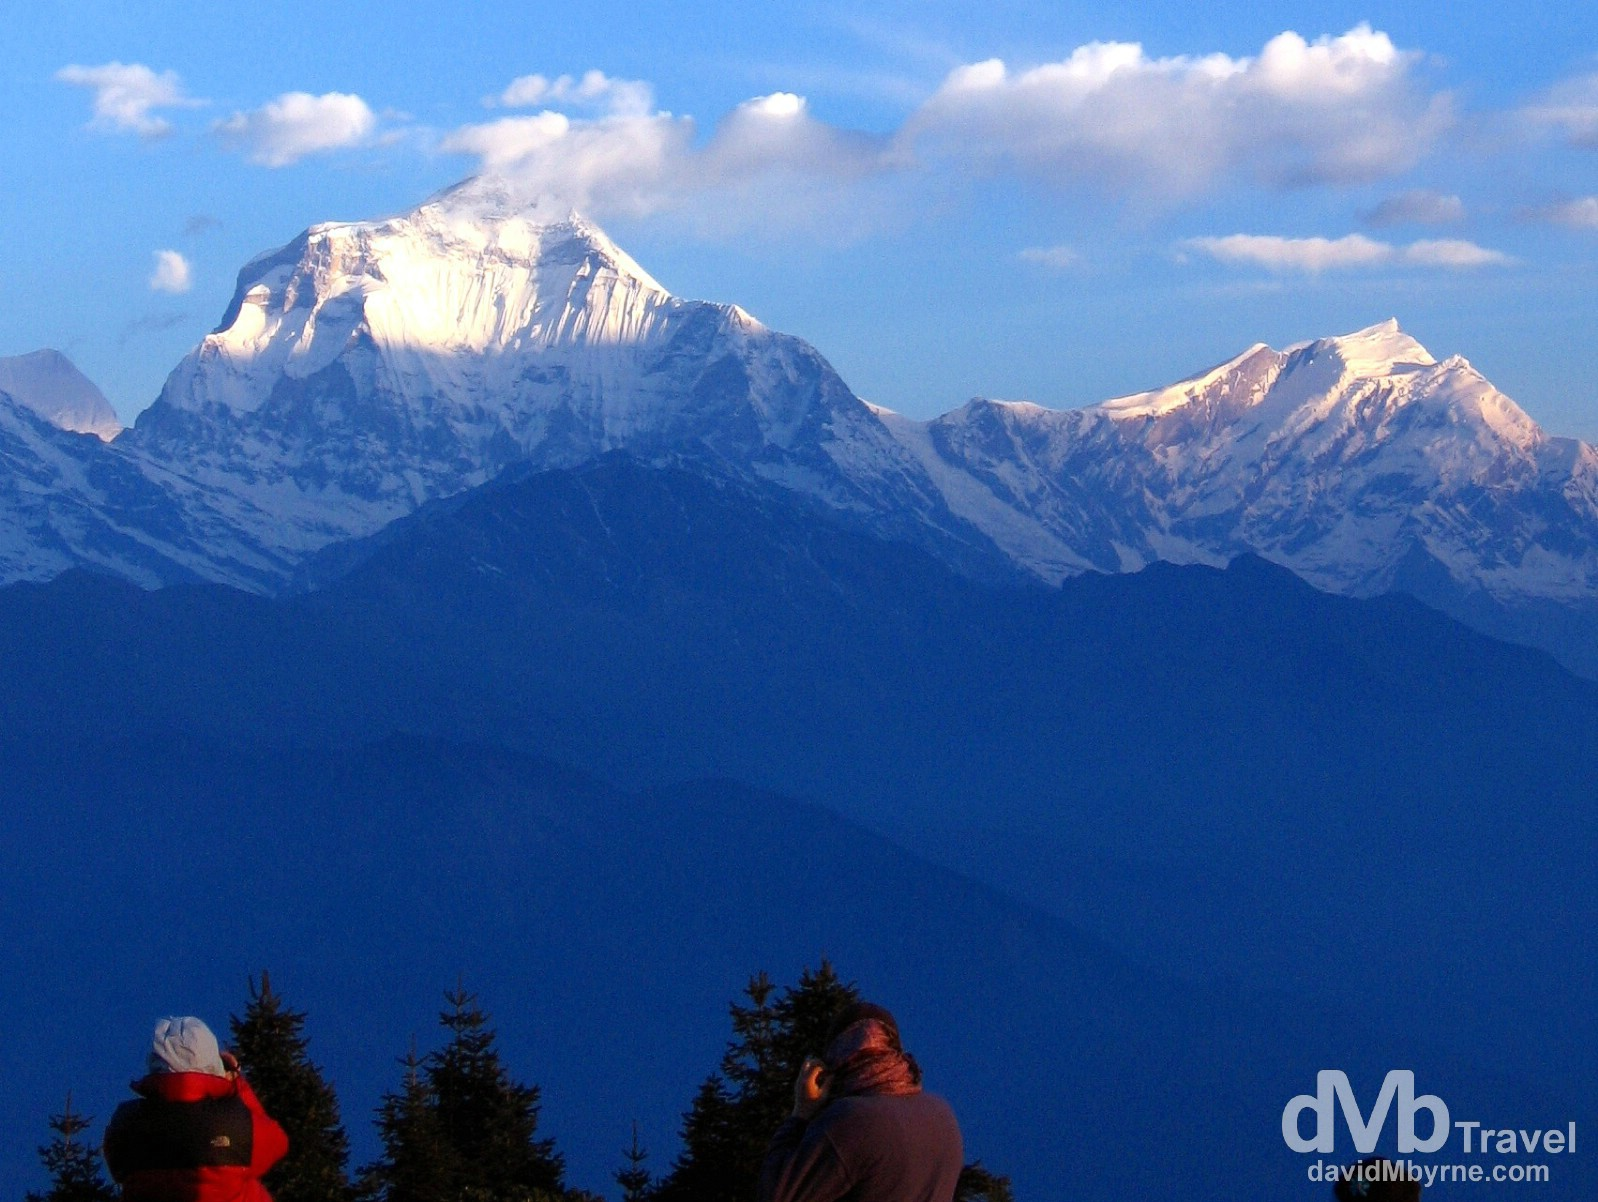 Early sunrise creeps up the face of Dhaulagiri (8,167 metres / 27,000 ft) as seen from Poon Hill, Annapurna Conservation Area, western Nepal. March 12th, 2008.